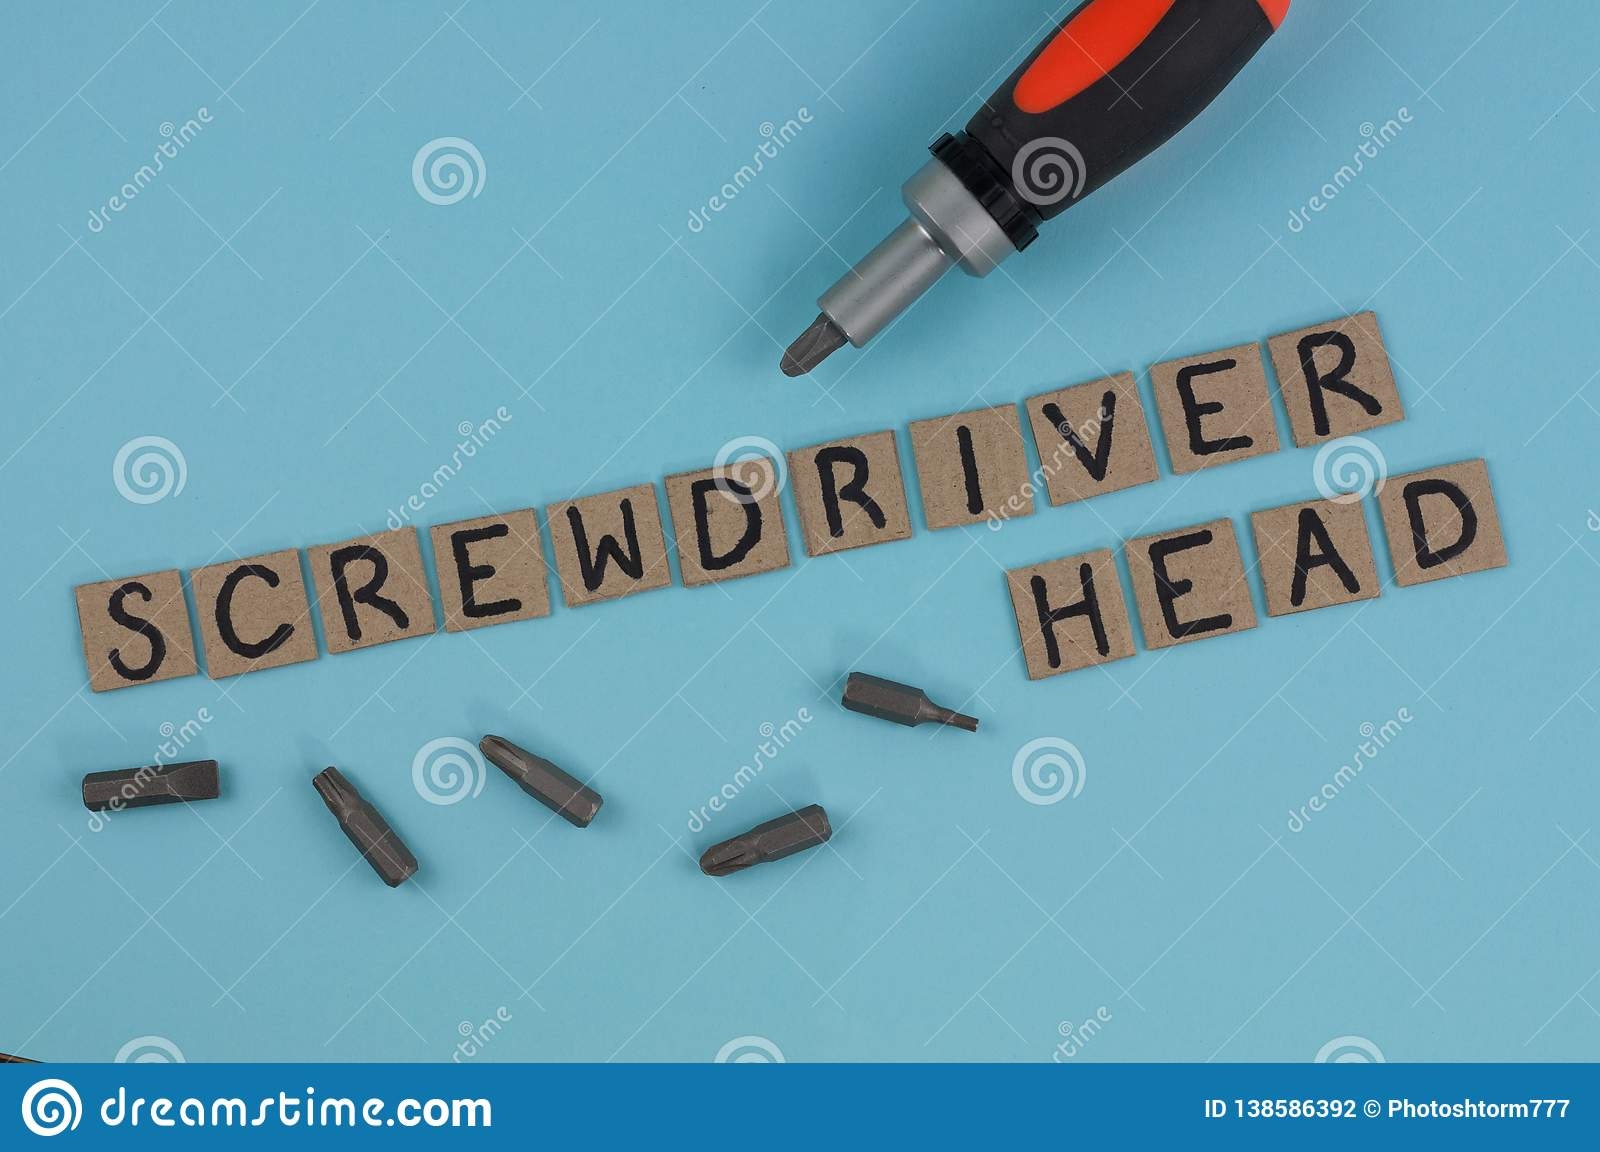 One Manual Screwdriver And Five Bits For Screwdriver Near